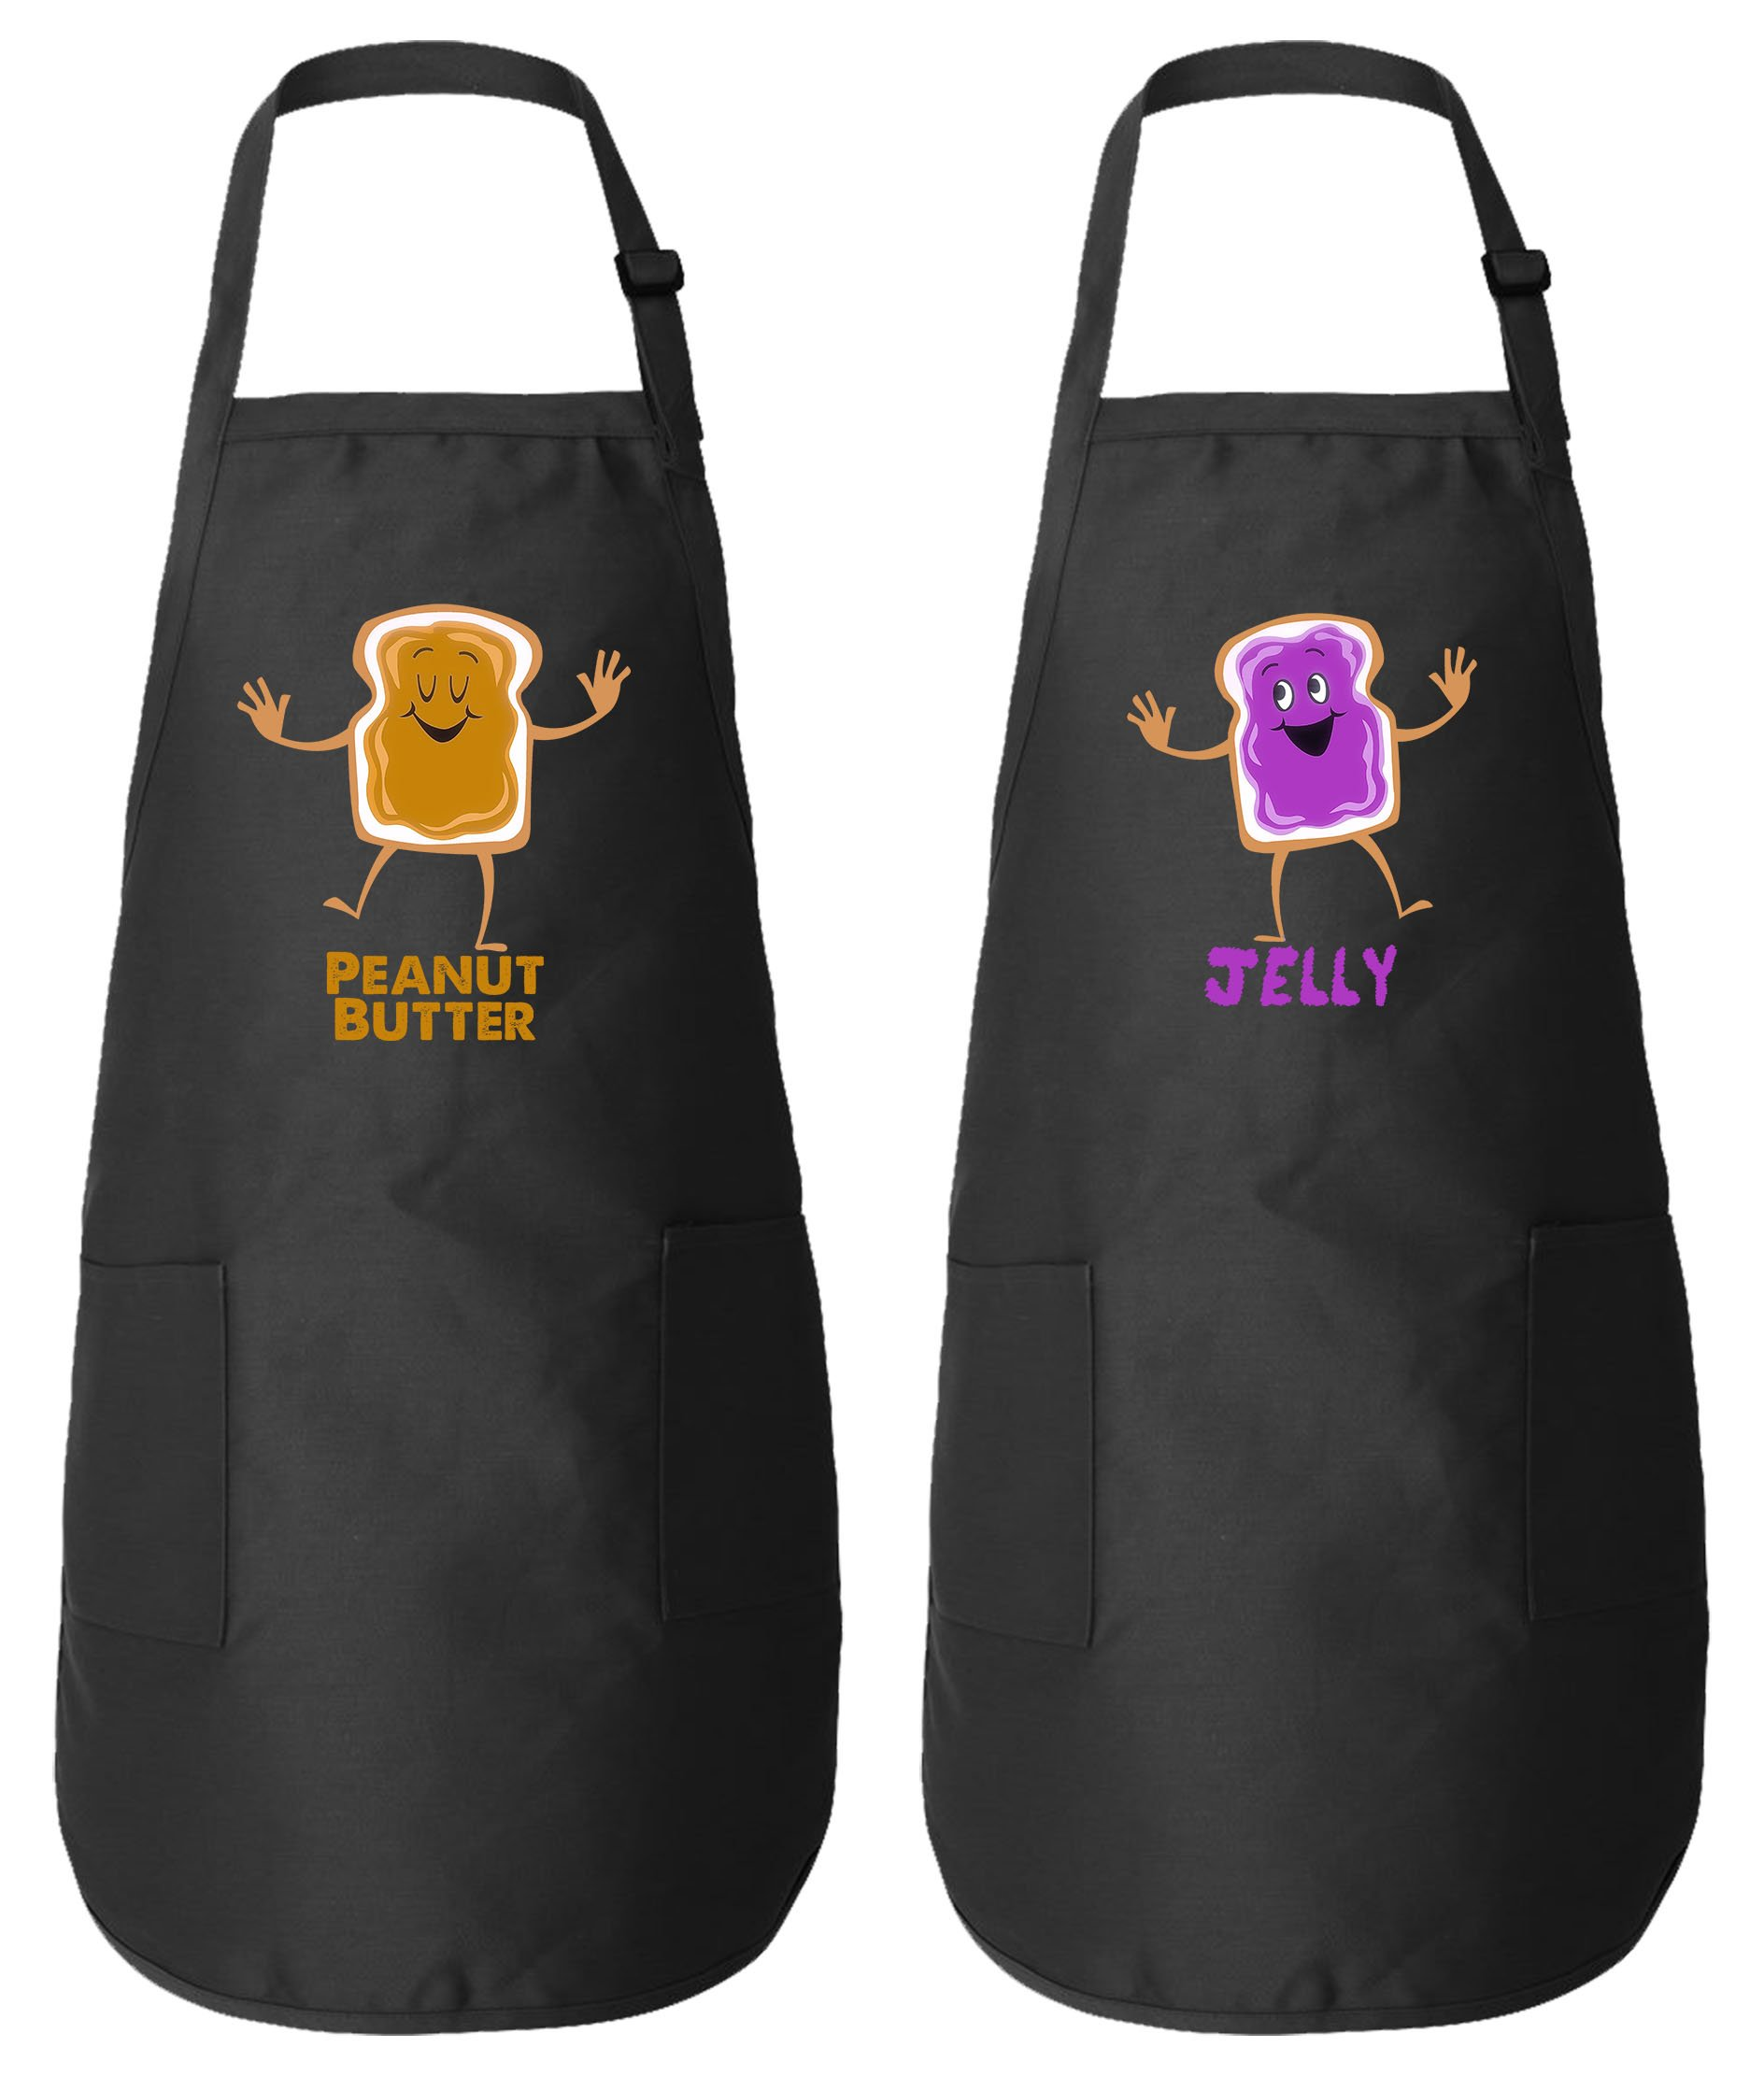 Peanut Butter & Jelly Matching Couple Aprons - His and Her Wedding Anniversary Gifts